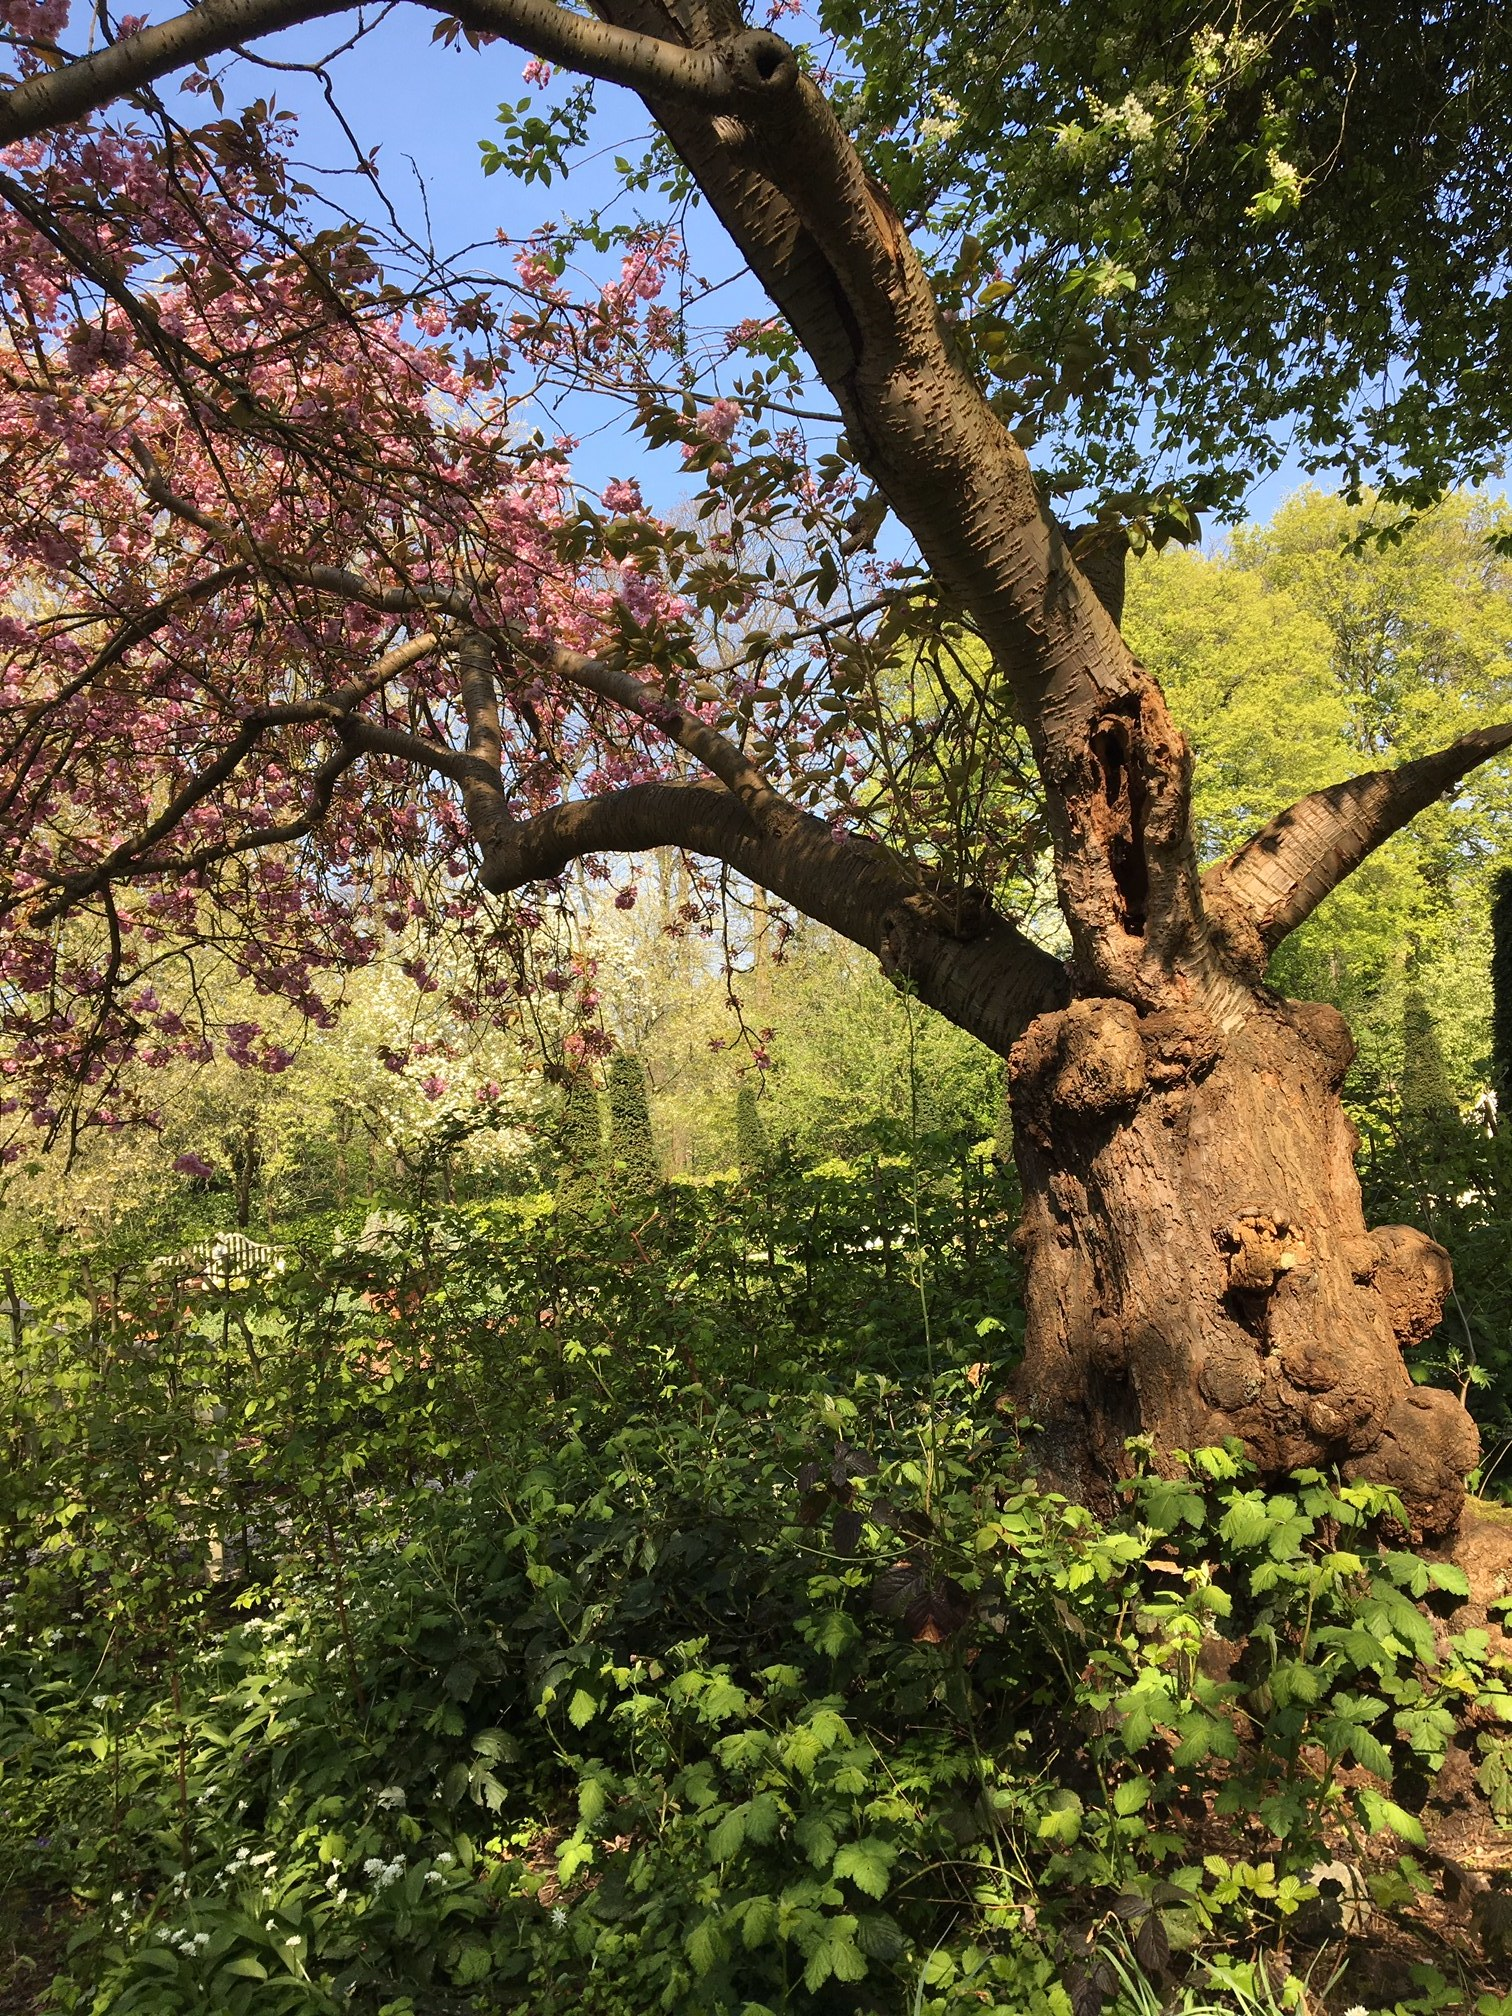 A blossom tree in one of the River of Herbs orchards in park Frankendael.